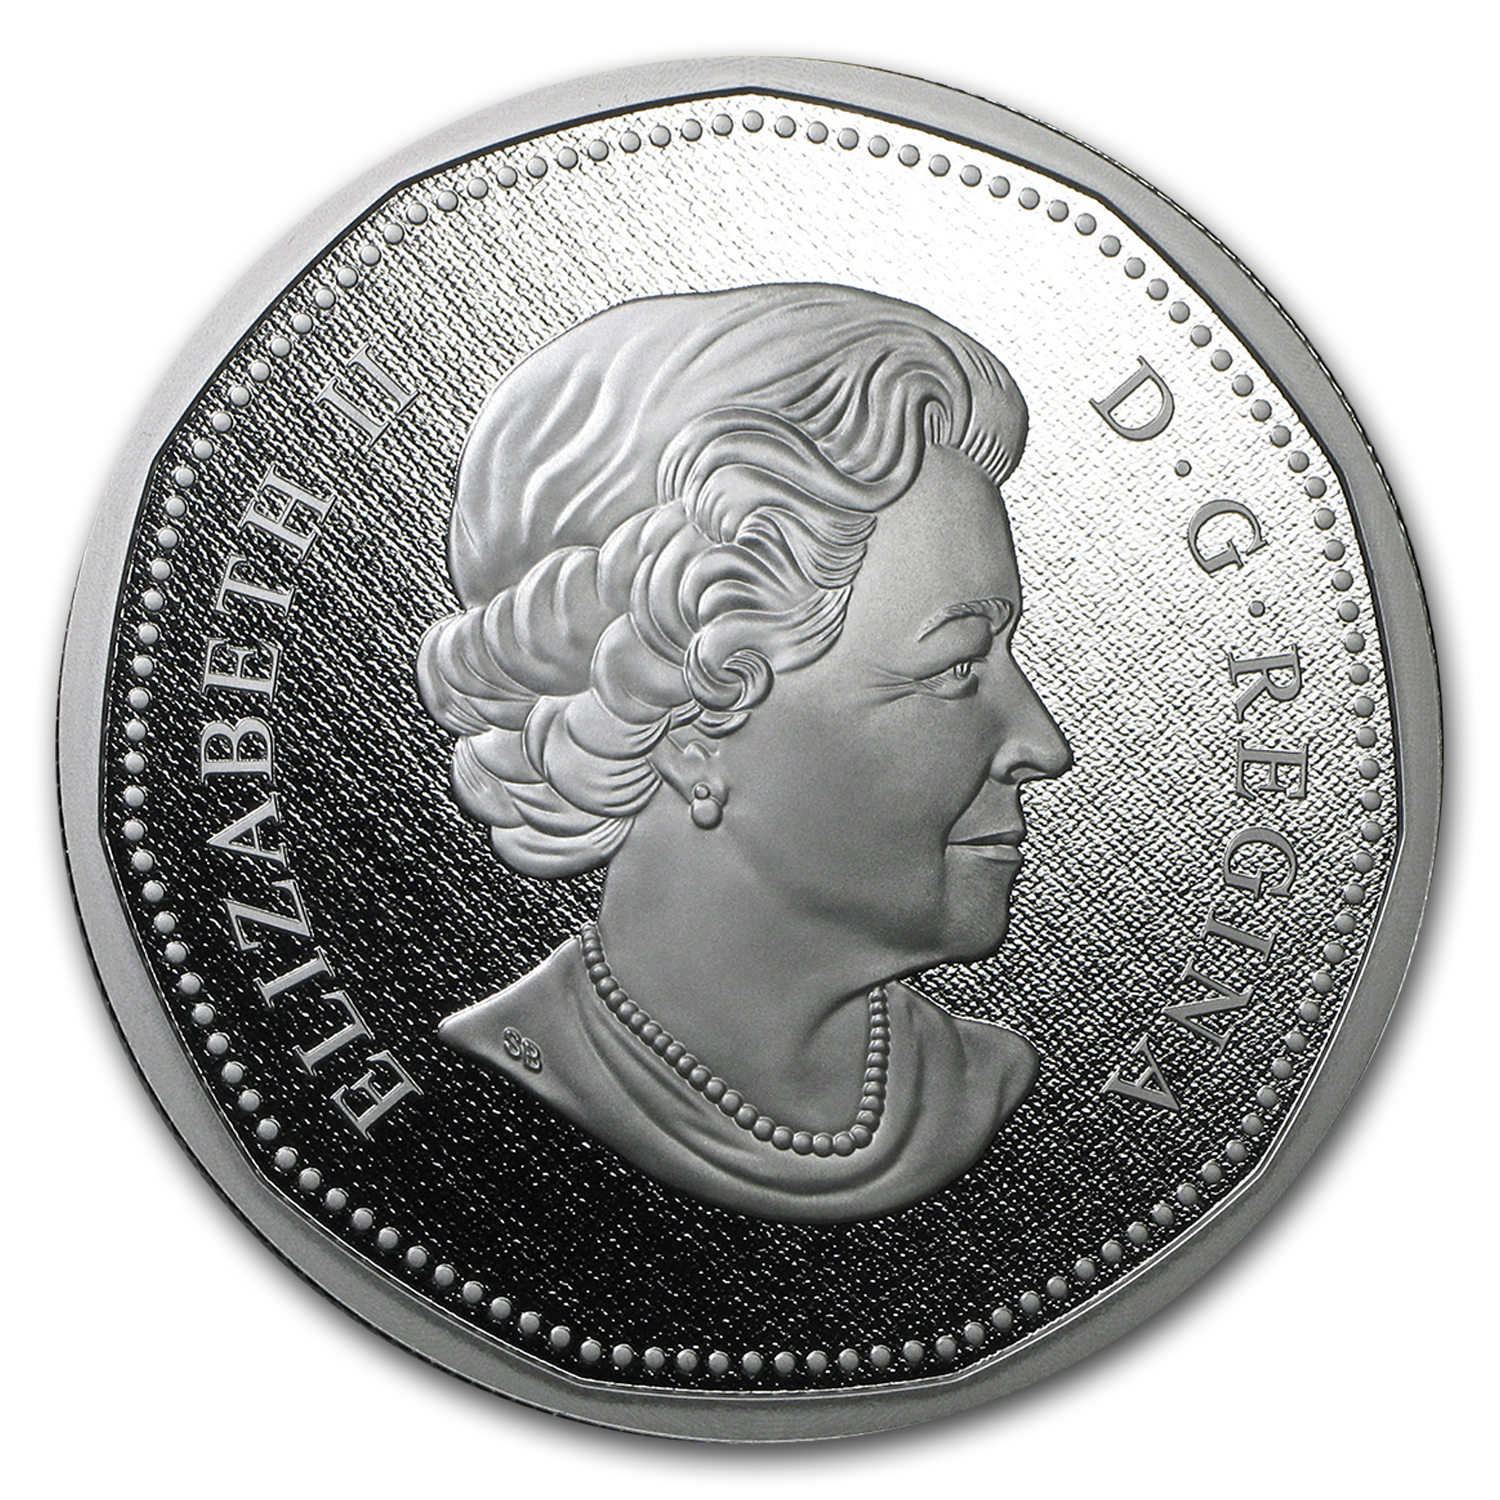 2016 Canada 5 oz Silver $1 Big Coin Series Dollar